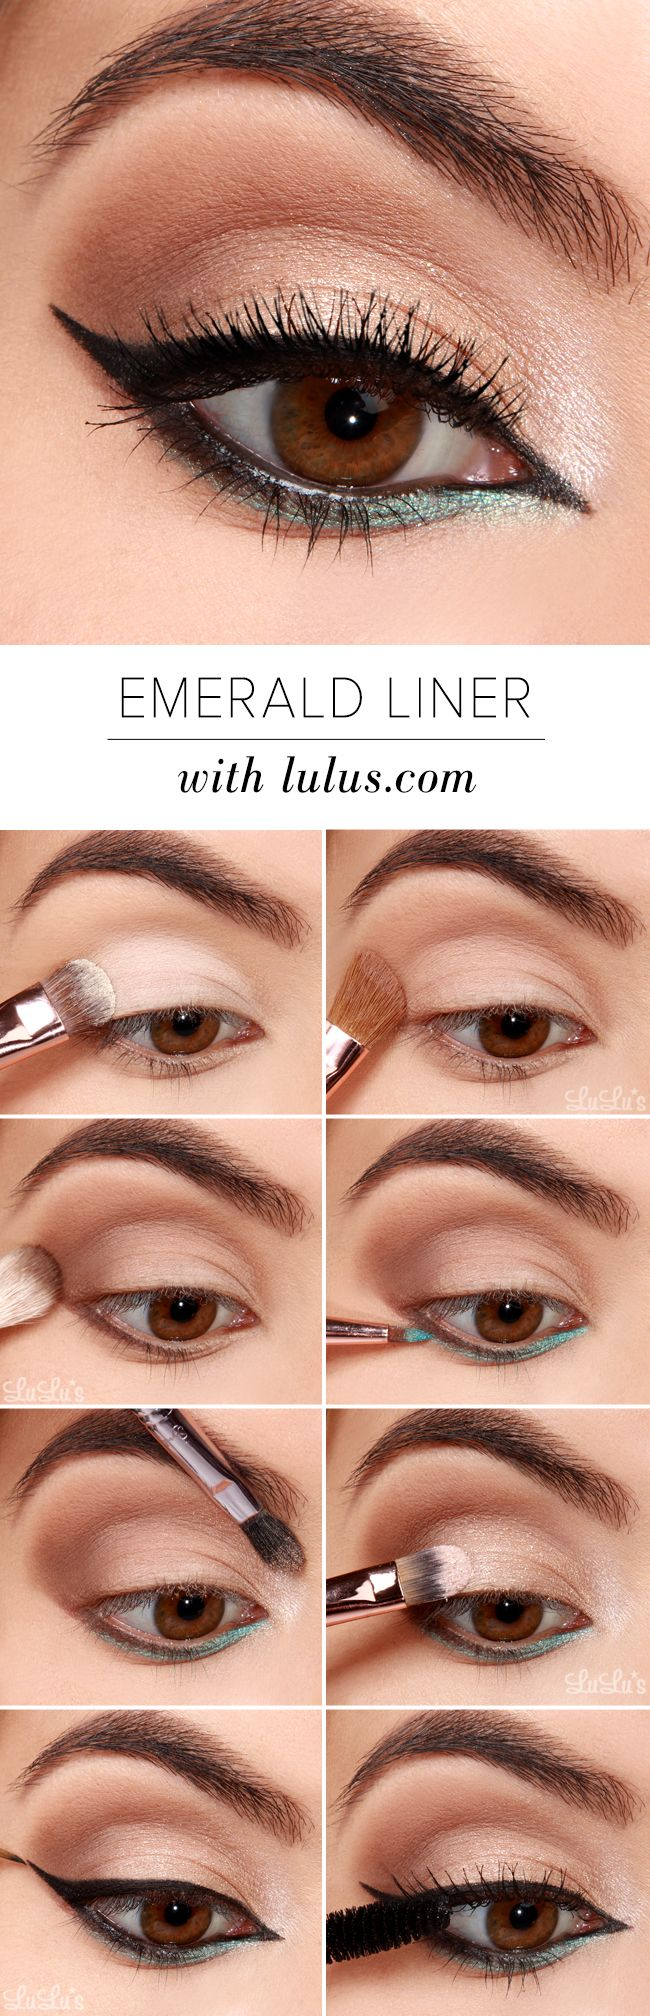 LuLu*s How-To: Emerald Green Eyeliner Tutorial at LuLus.com!